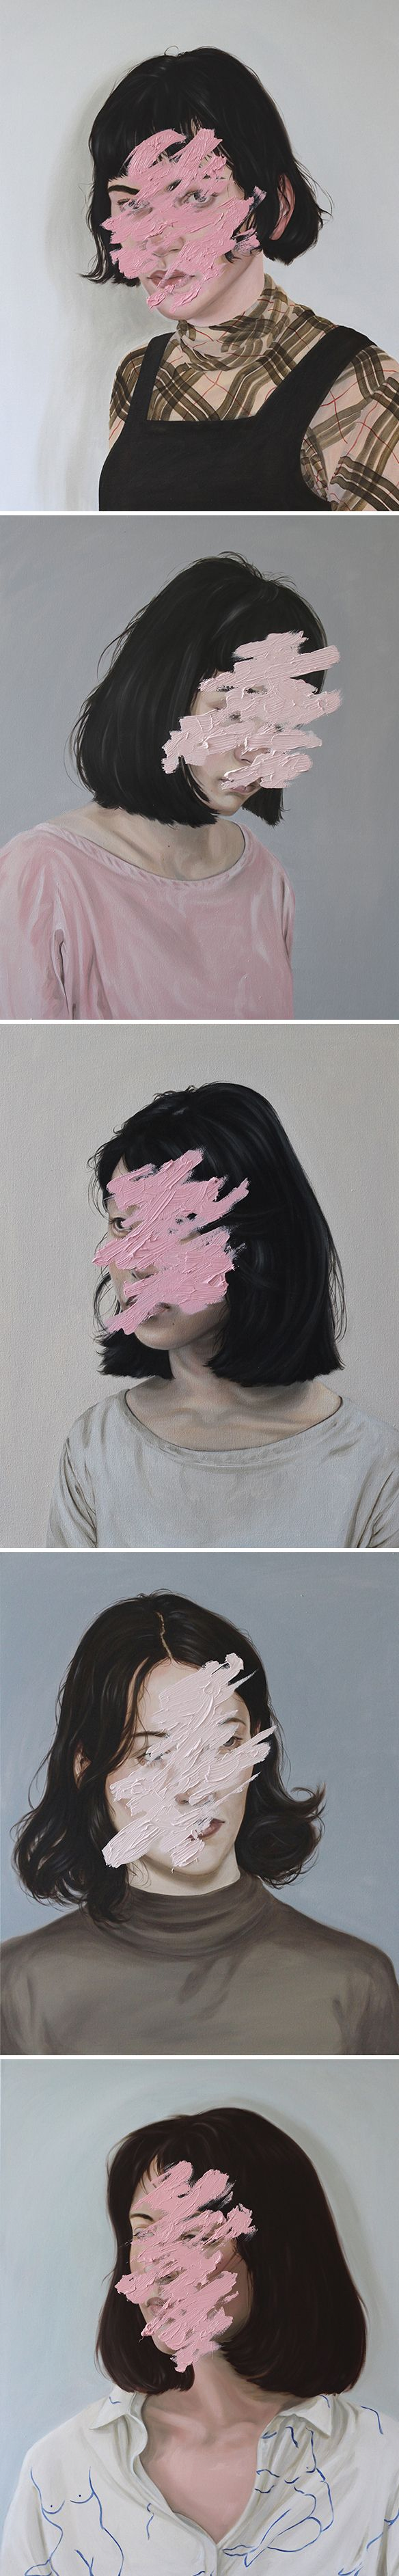 The Jealous Curator /// curated contemporary art /// henrietta harris